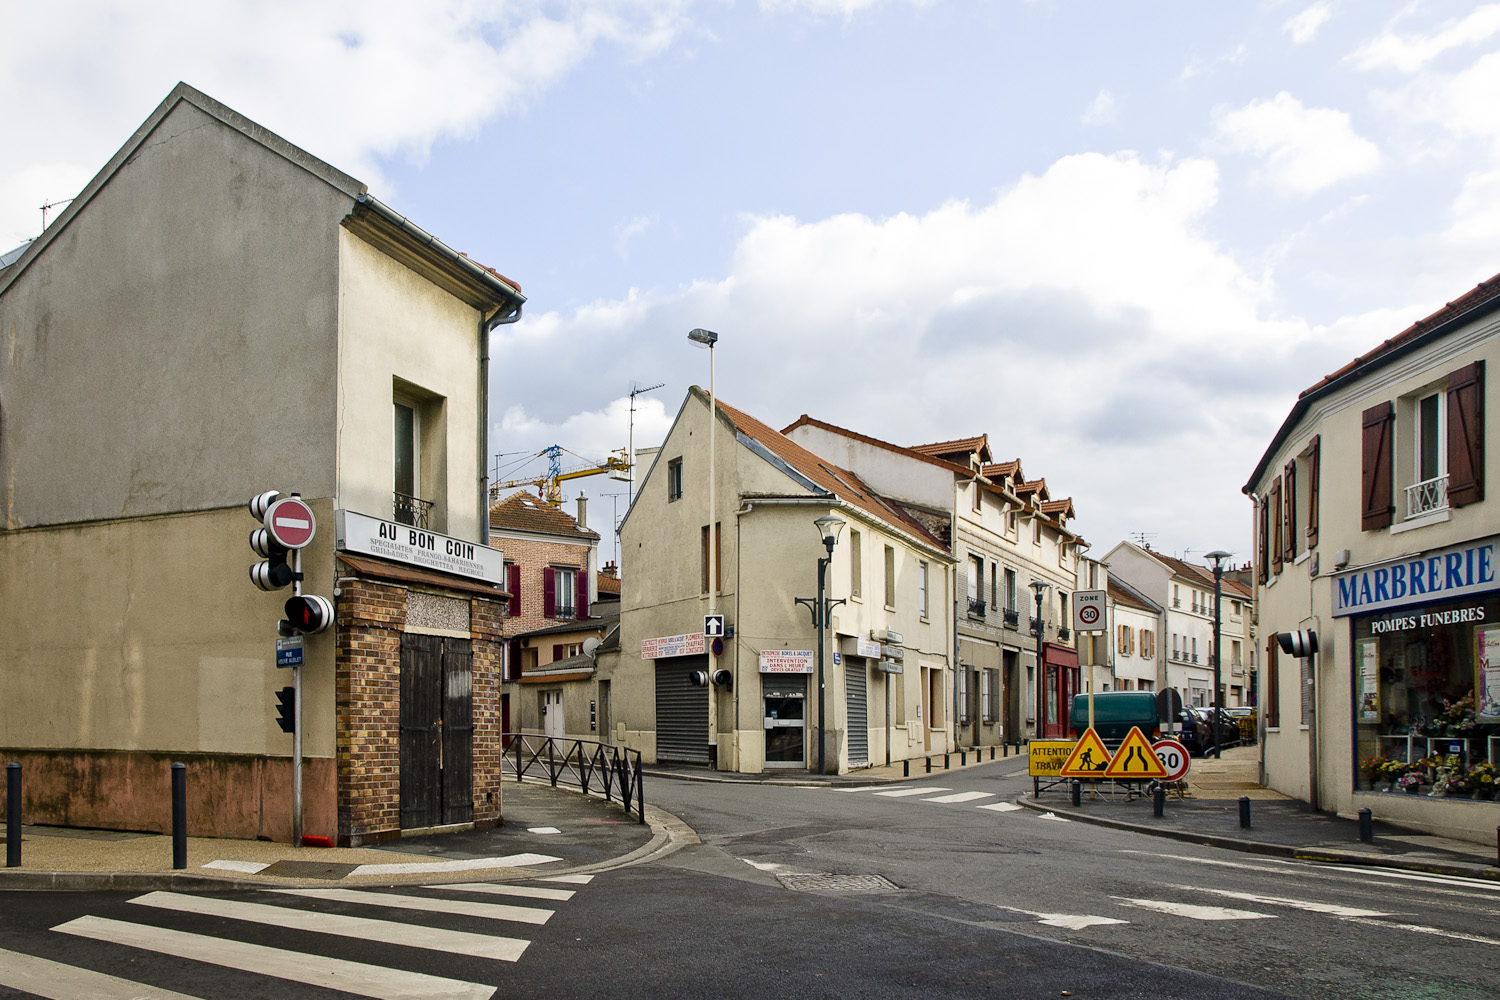 16-Romainville- Place de l'eglise -2009.jpg